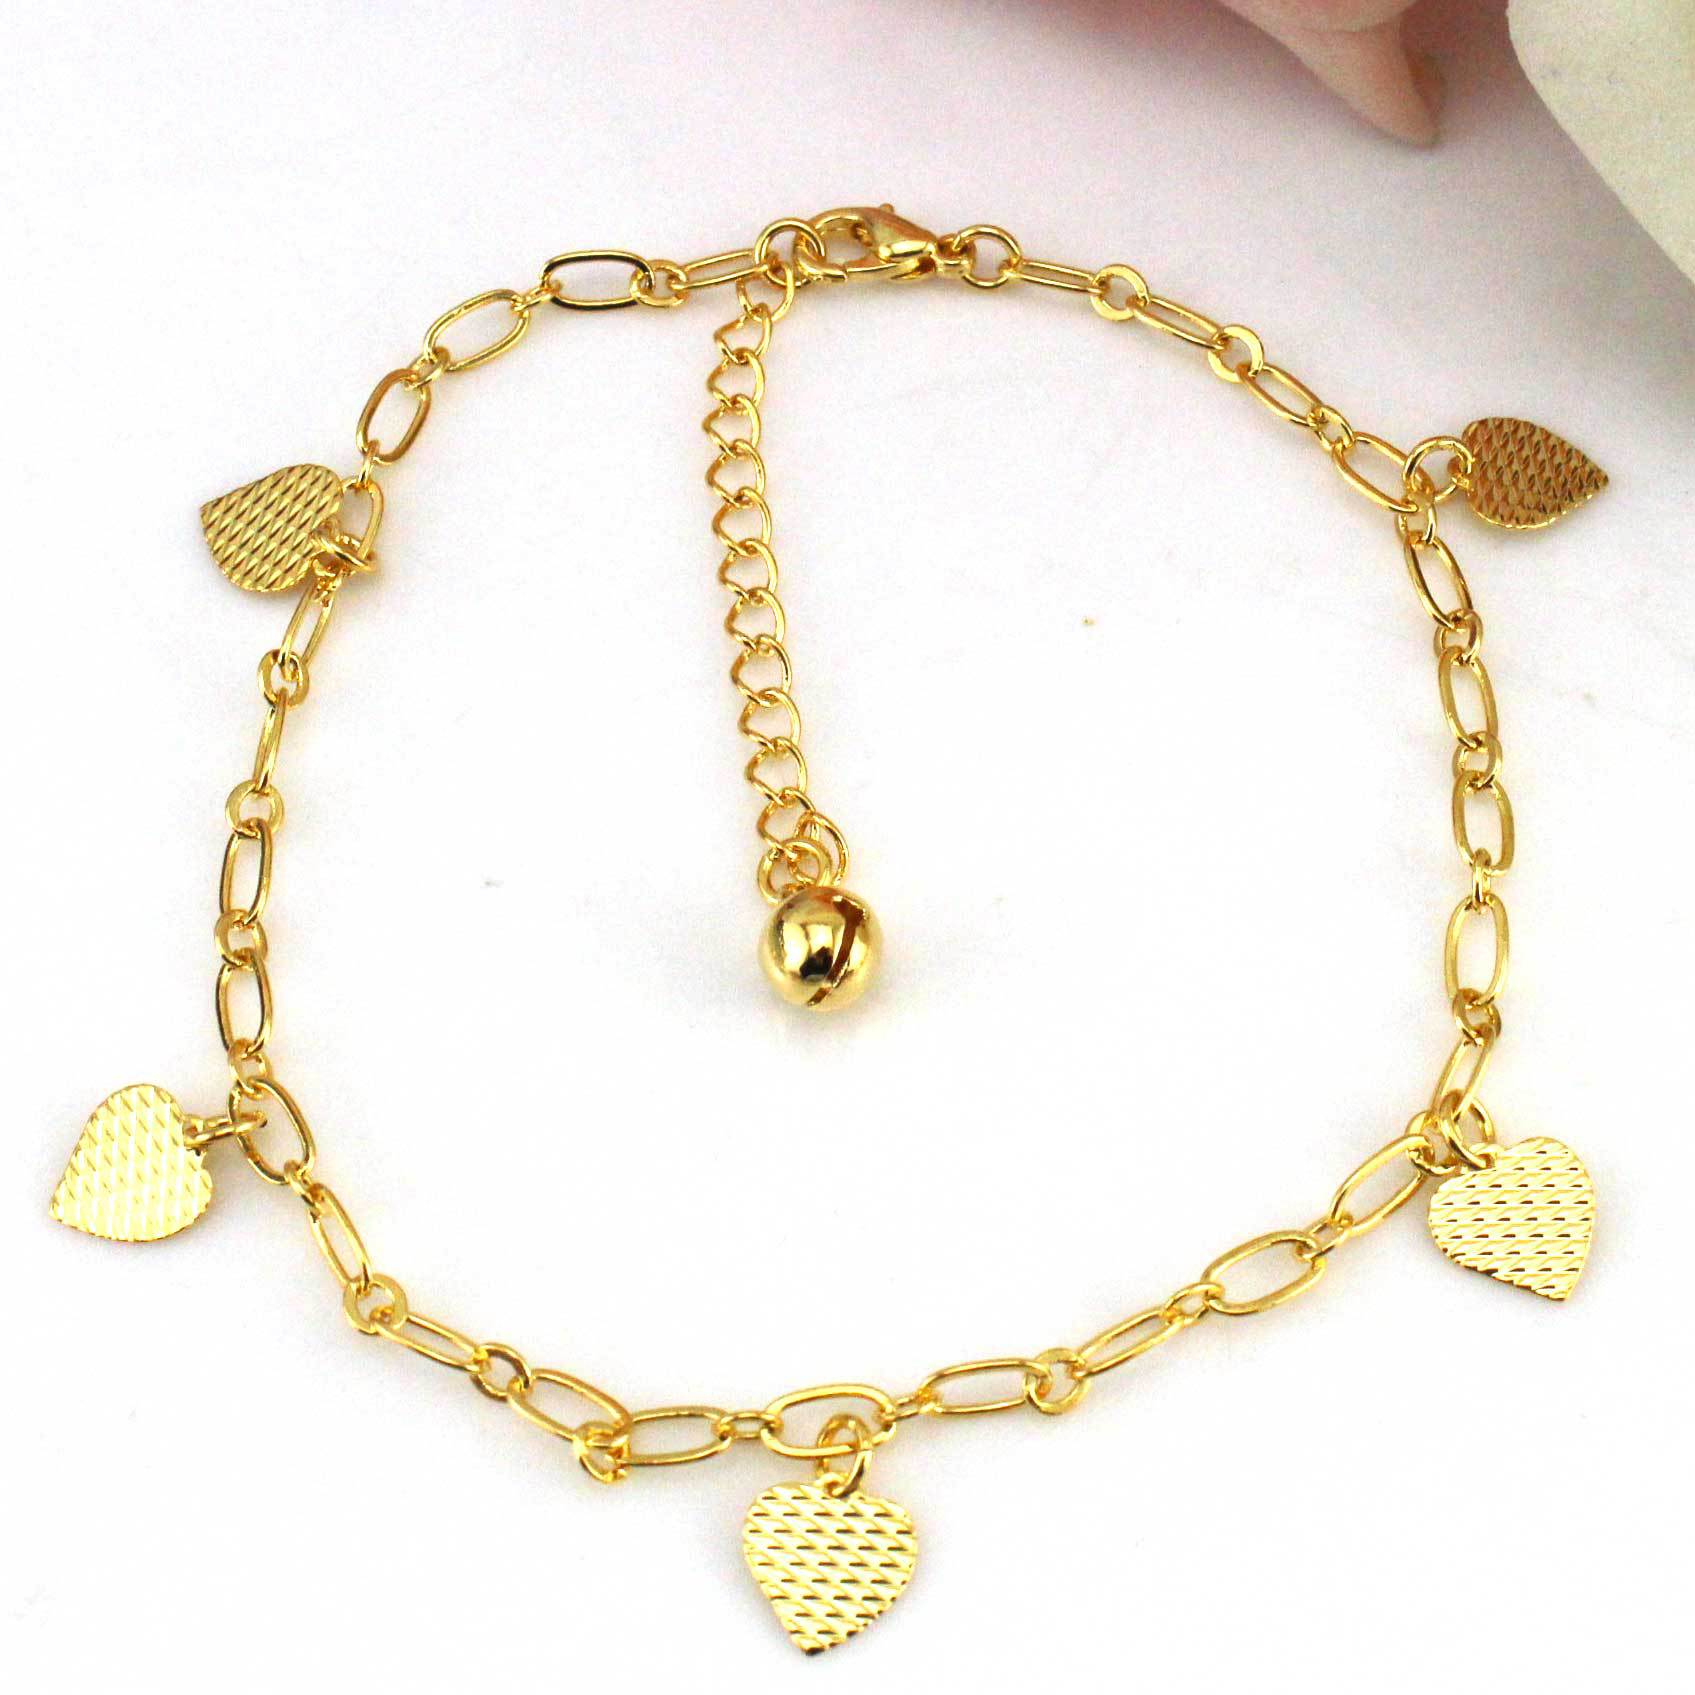 plated of chain stainless new with bracelets made gold itm ankle steel rose charm charms bracelet heart foot anklet